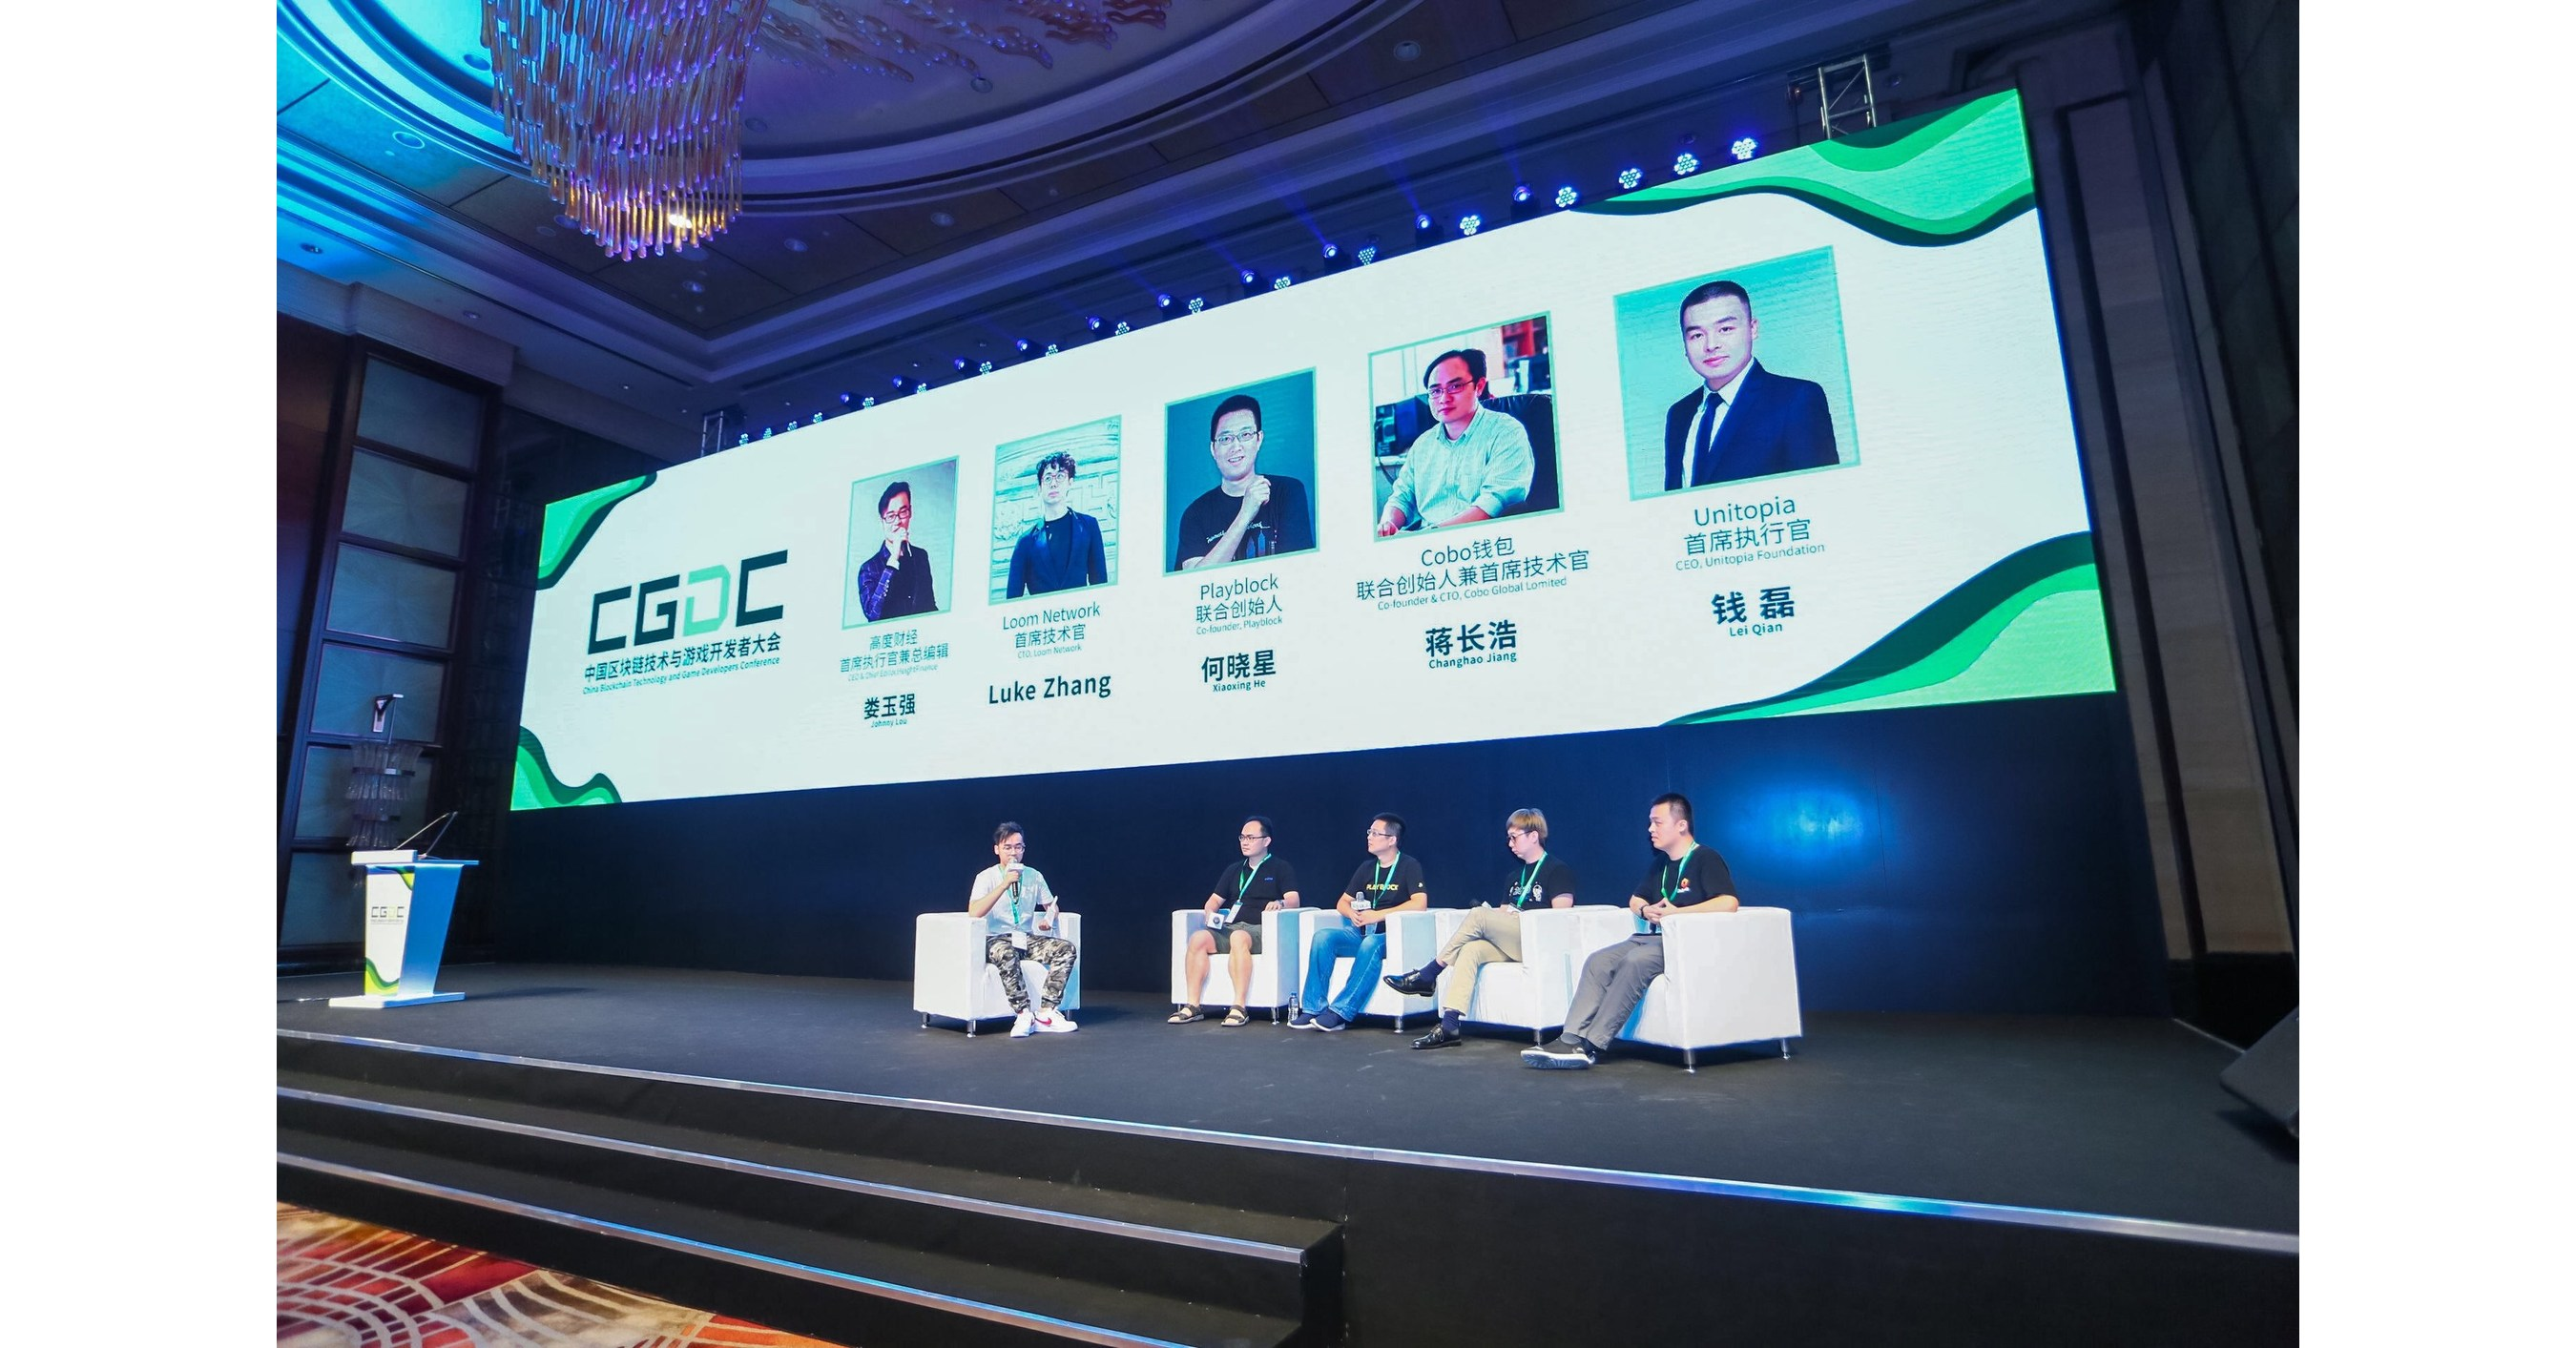 PlayBlock co-founder He Xiaoxing shares his thoughts on what makes a blockchain game successful at ChinaJoy Blockchain Technology Conference